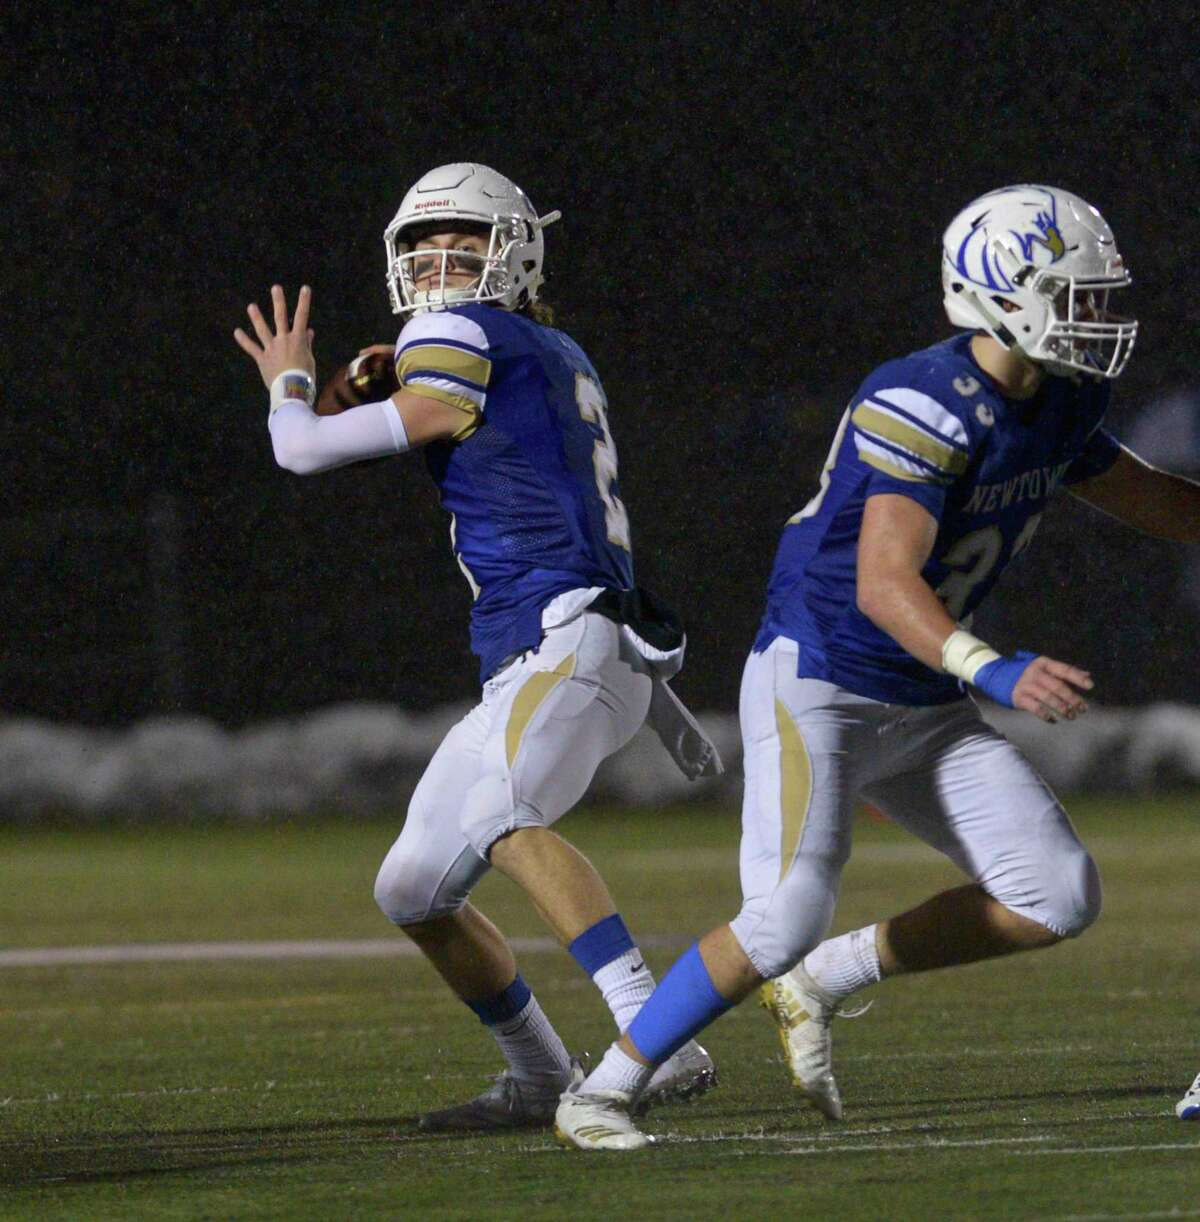 Newtown quarterback John Street looks to pass in the Class LL State Football semifinal game between No 4 Simsbury and No. 1 Newtown high schools, Monday December 9, 2019, at Newtown High School, Newtown, Conn.